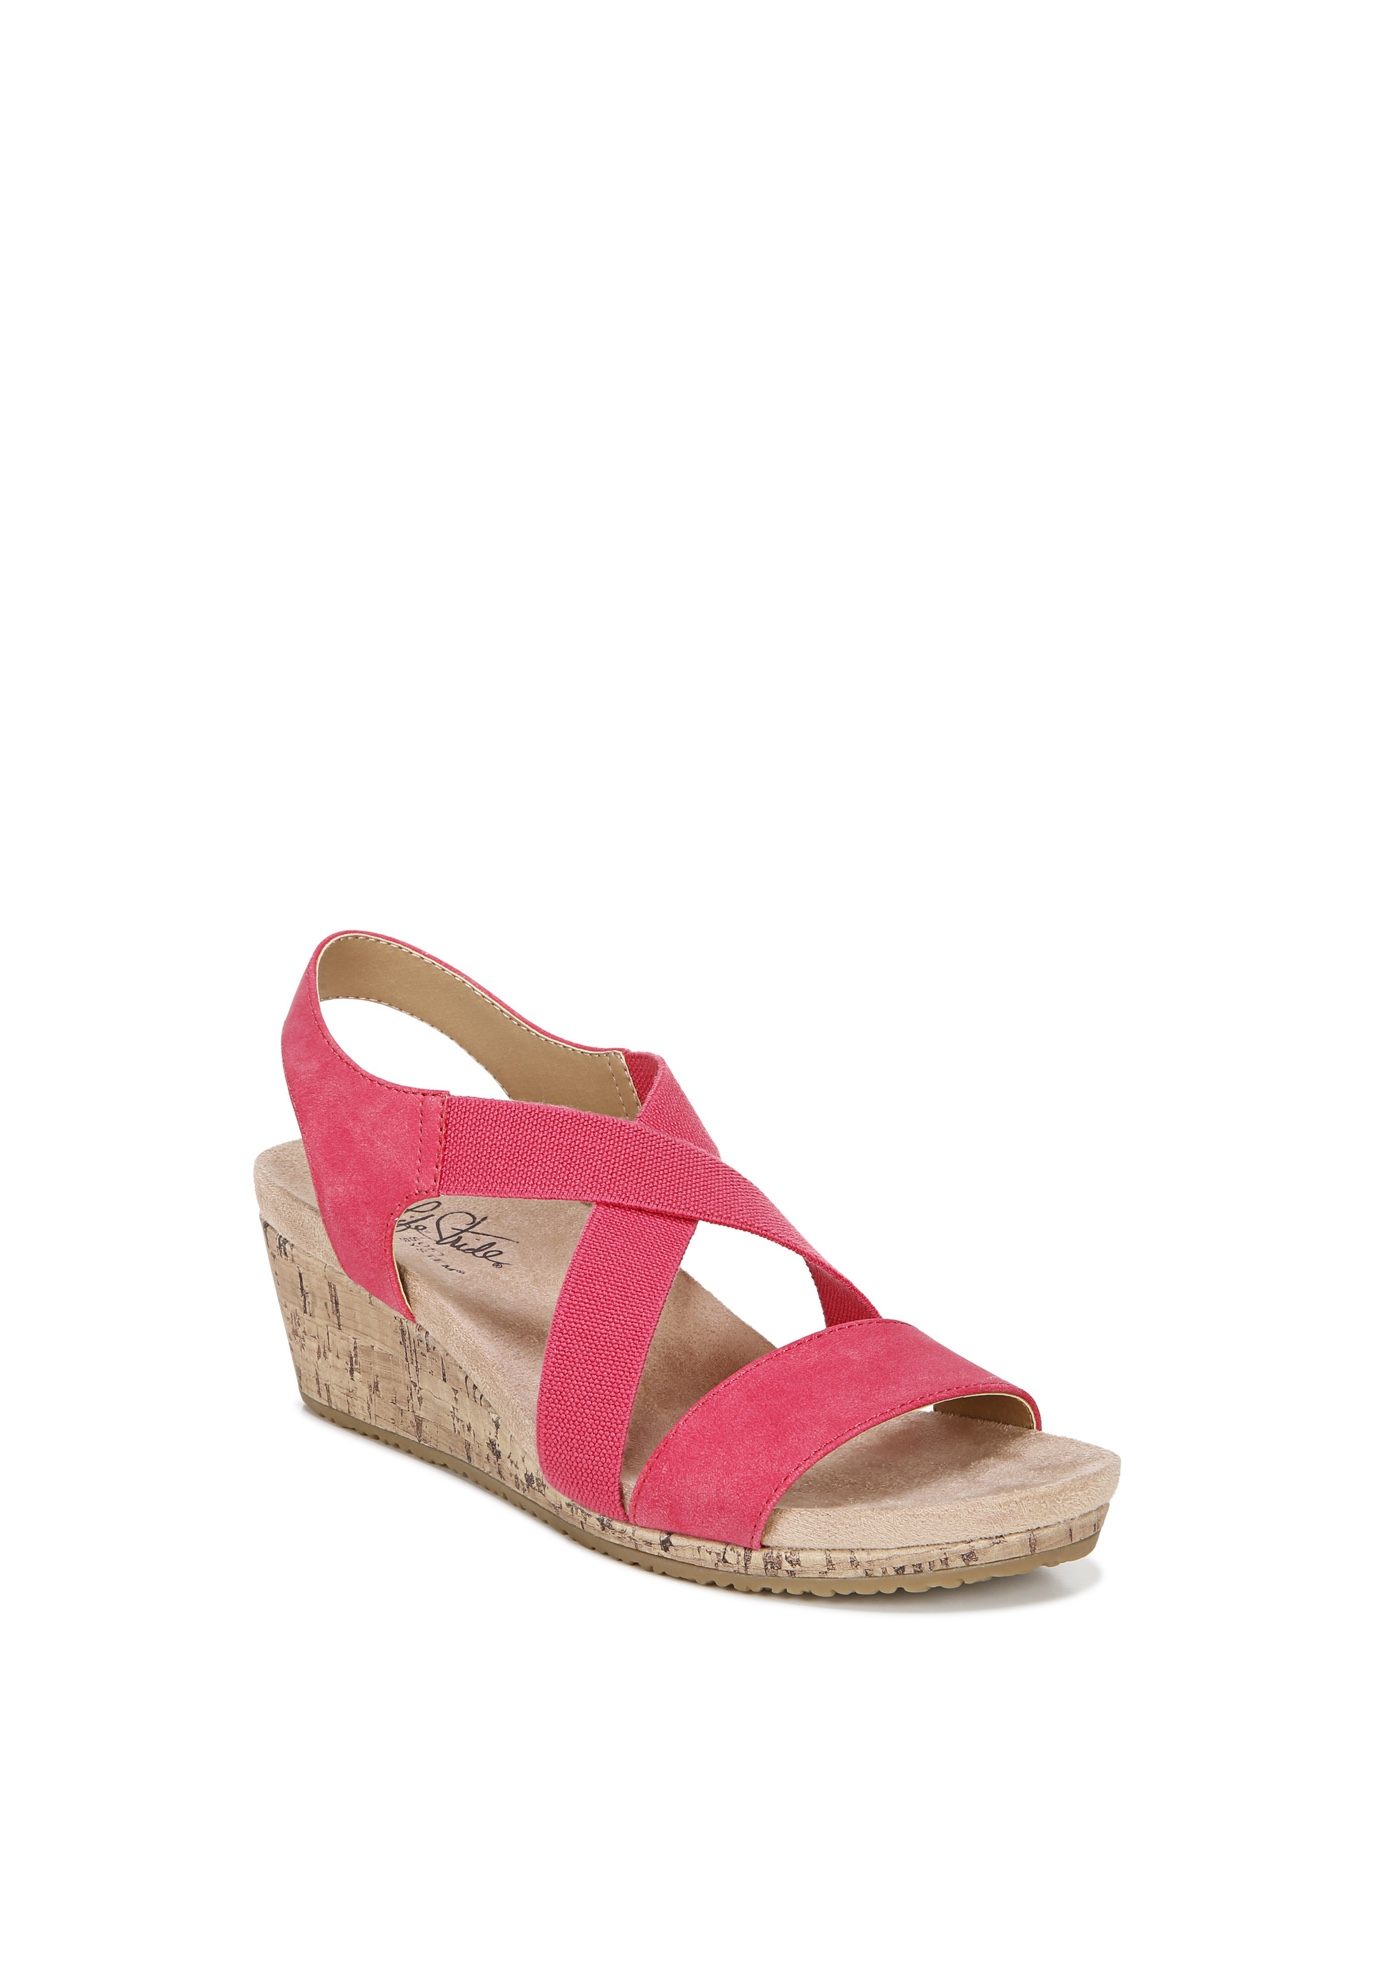 Mexico Espadrilles by LifeStride,